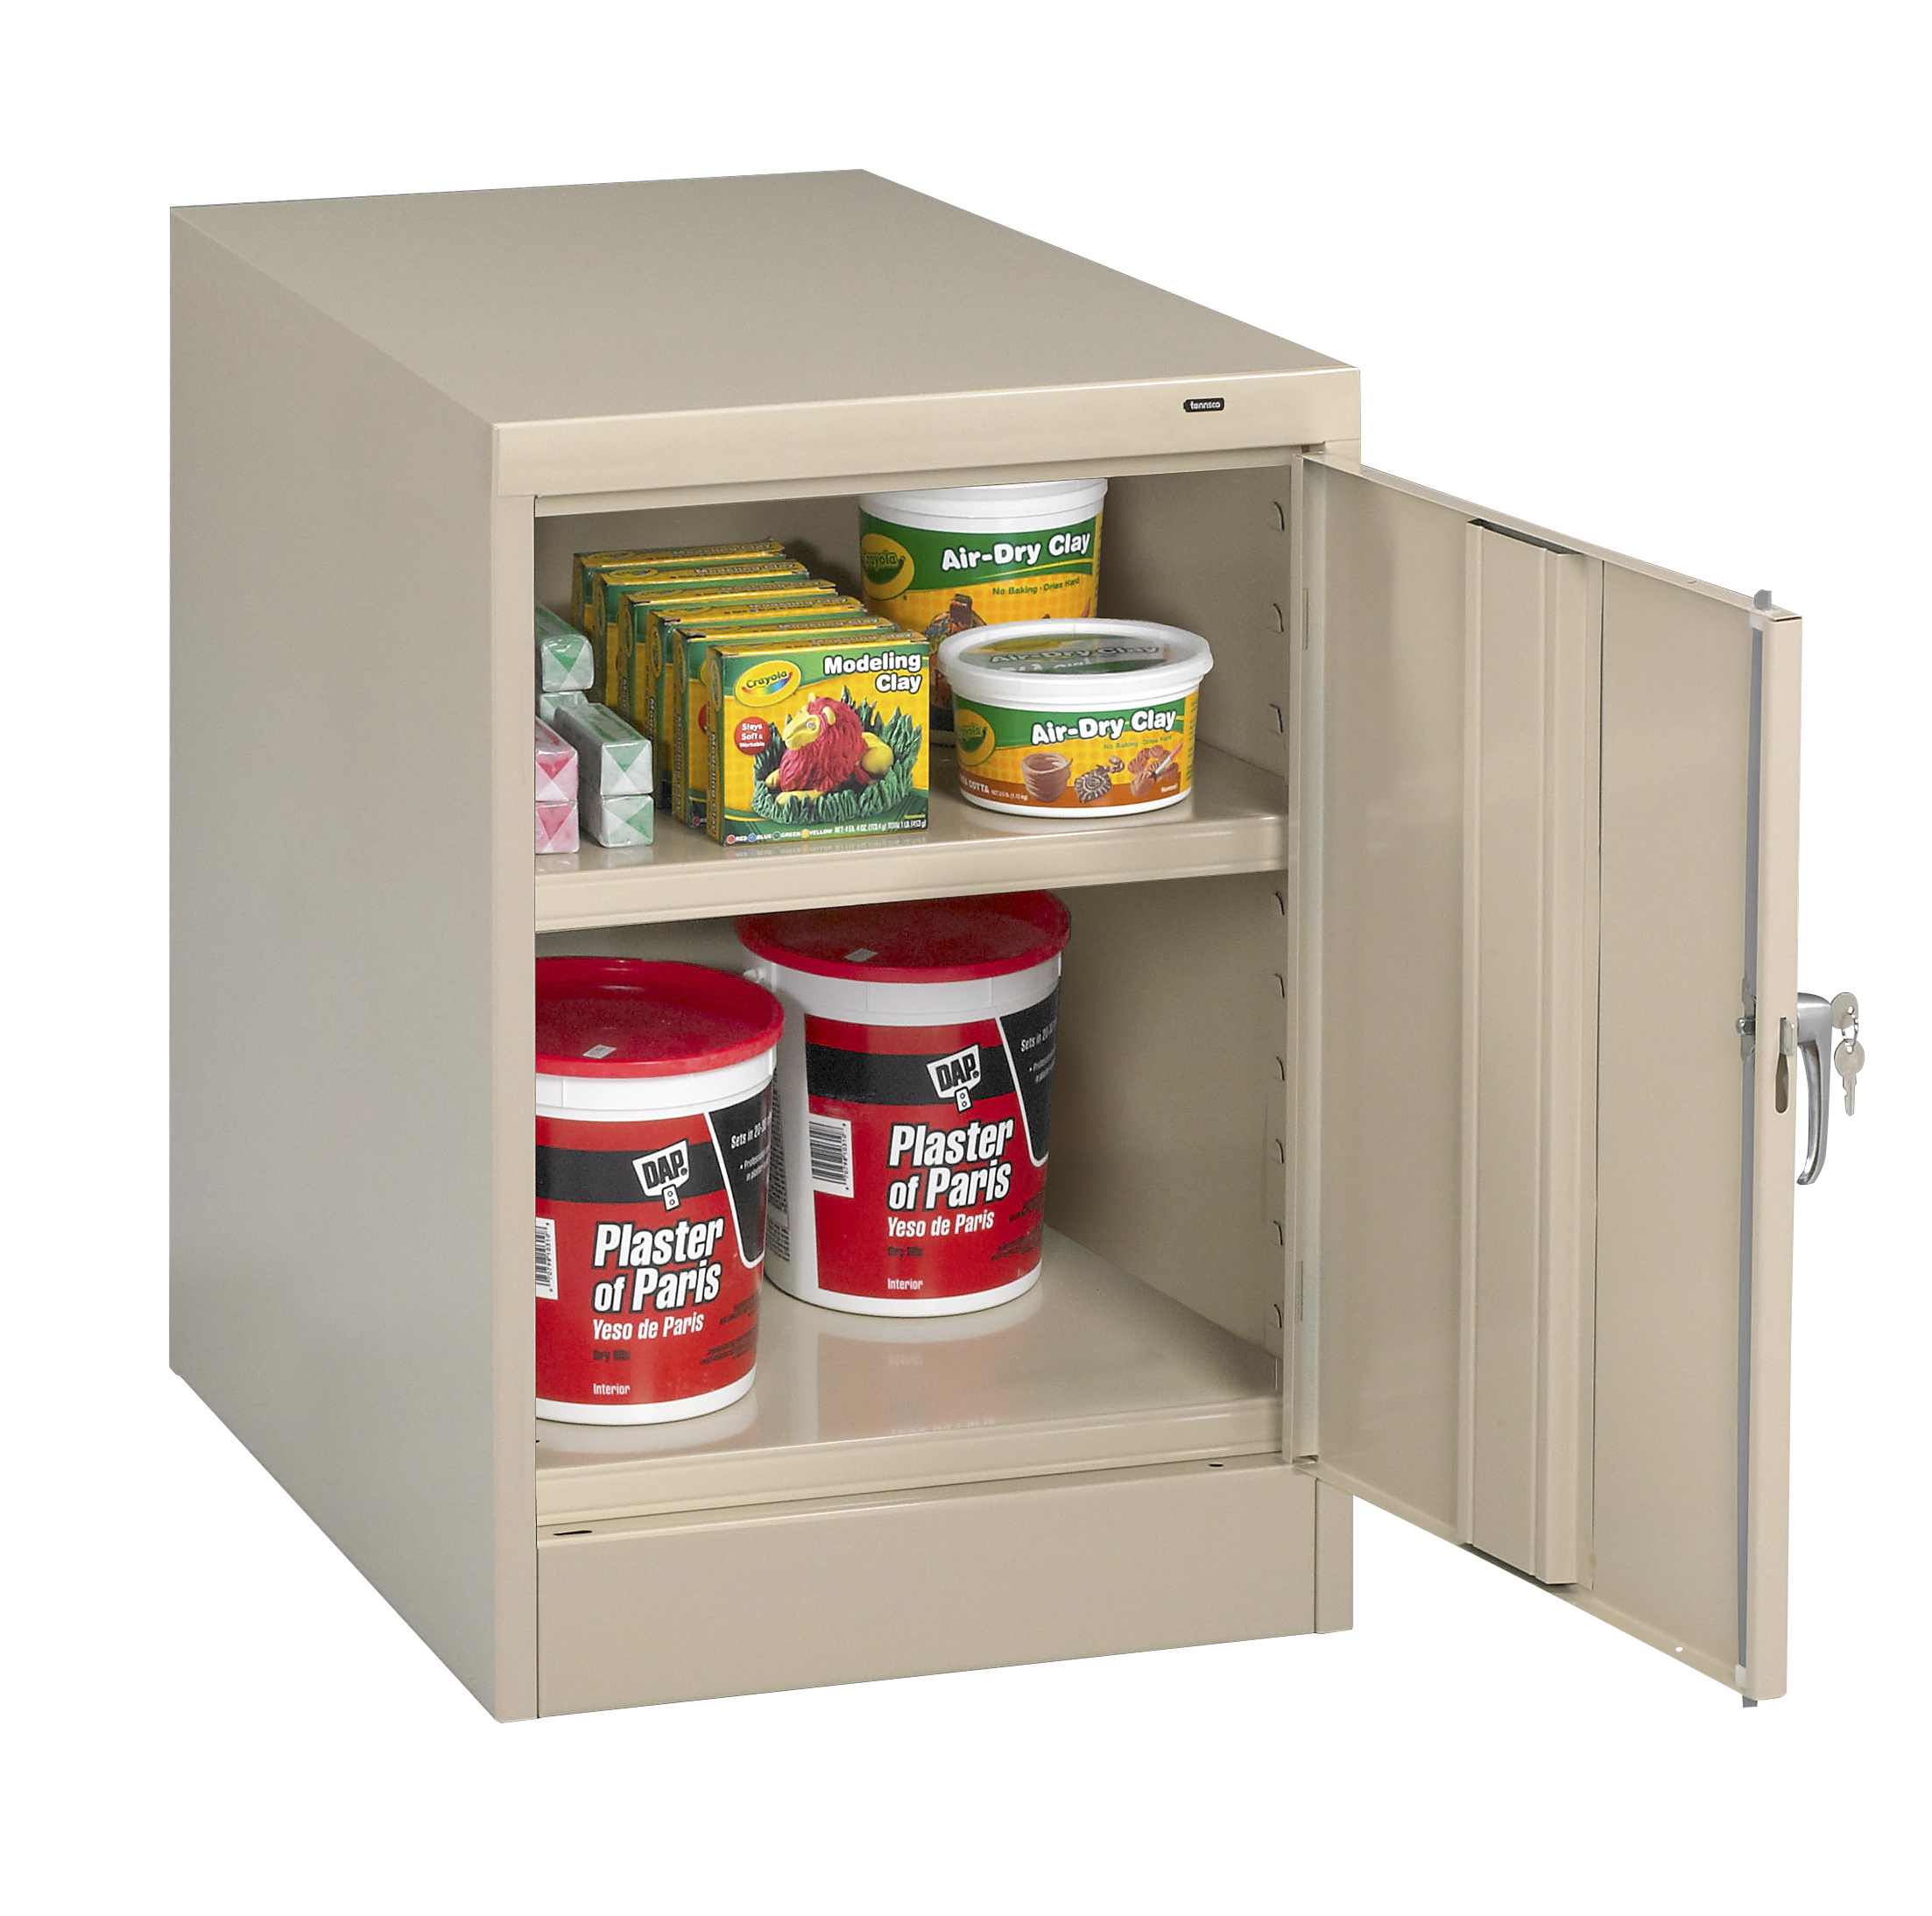 Tennsco - Storage Made Easy - Single Door Cabinet